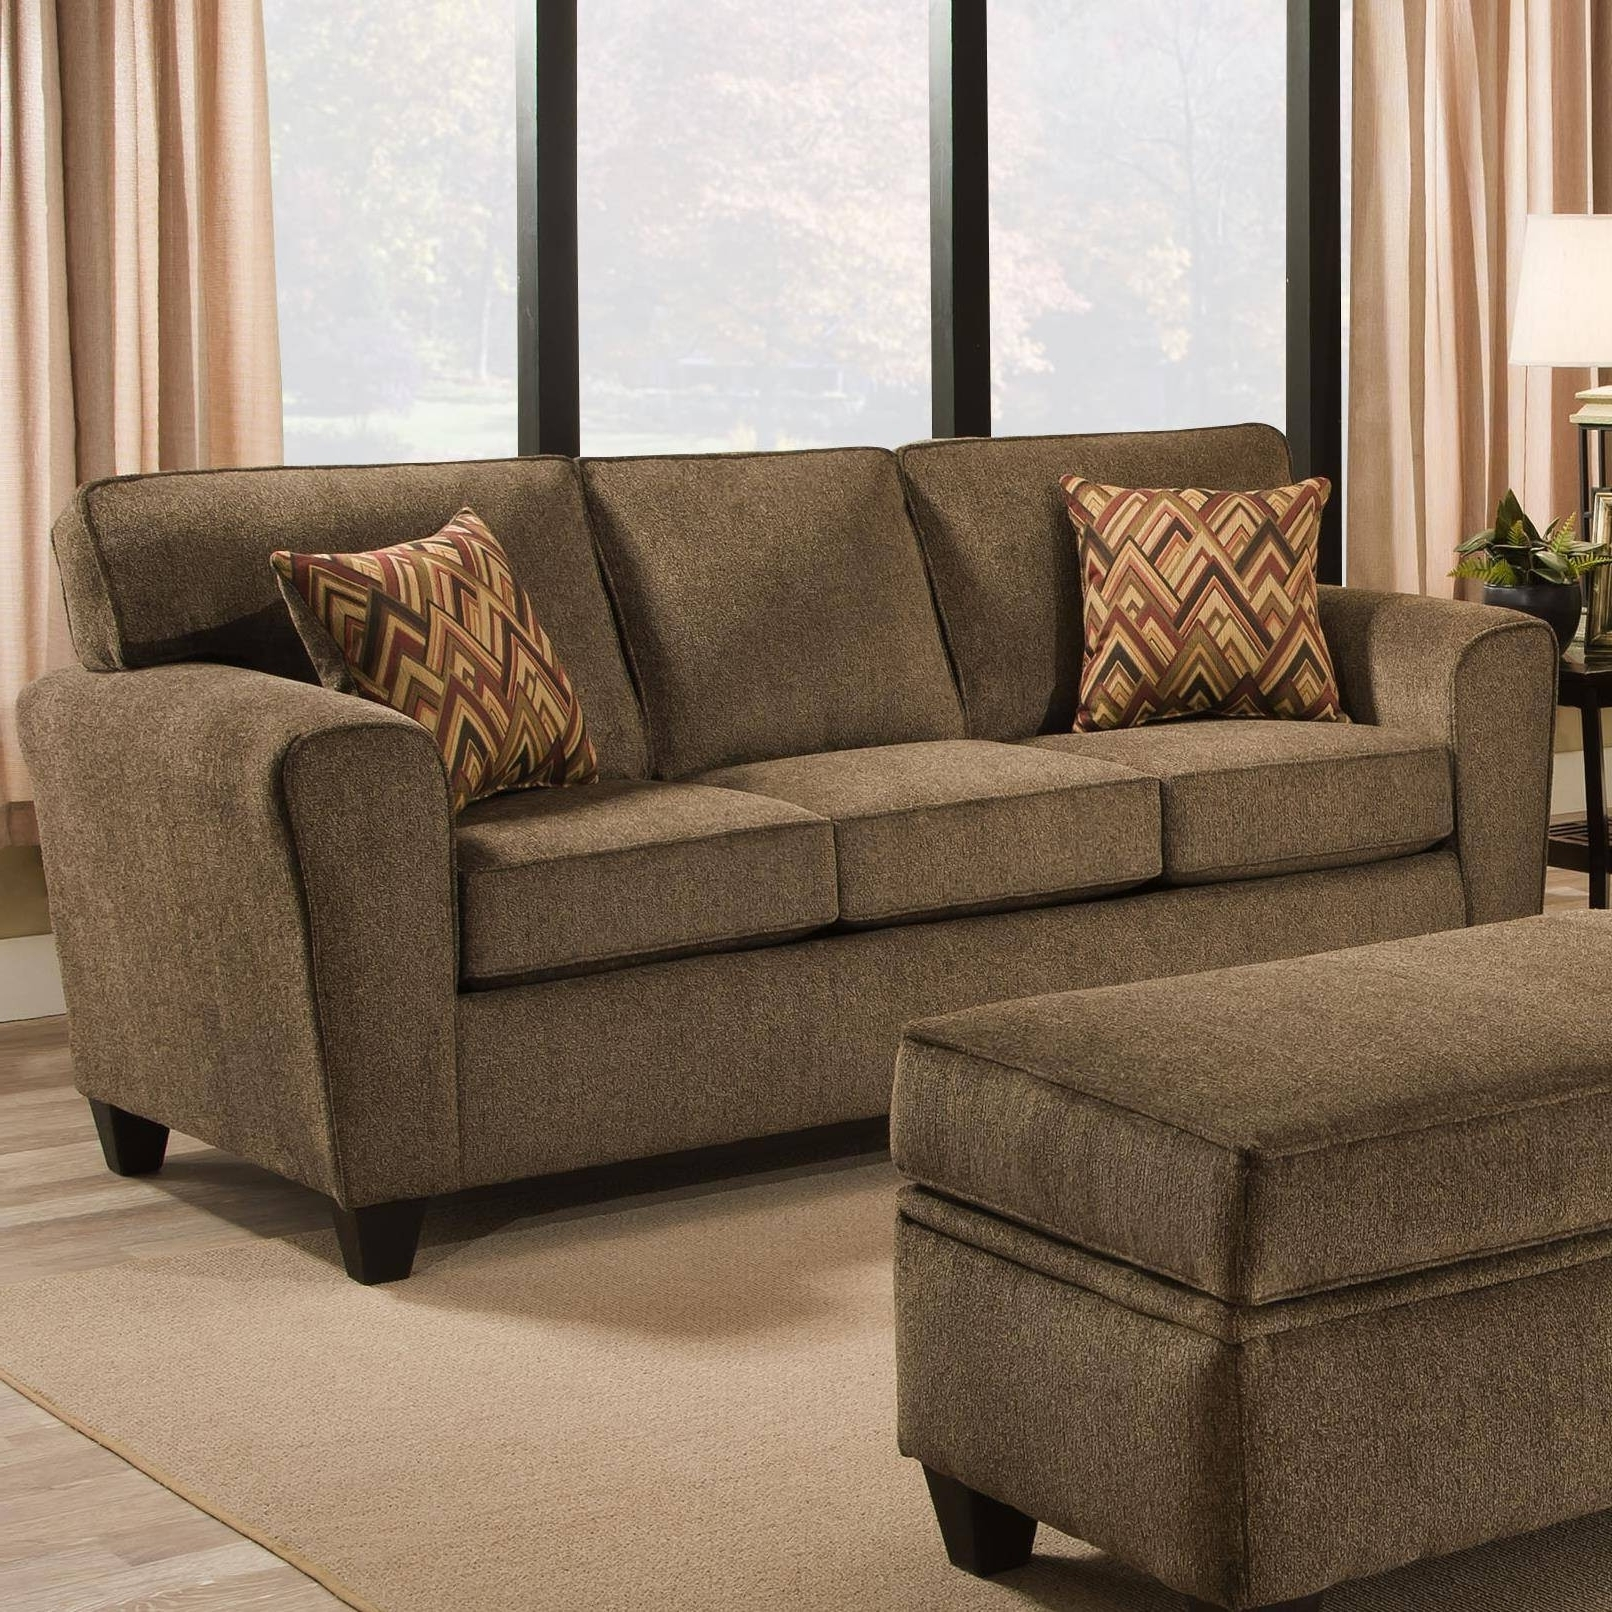 Newest Furniture : Ethan Allen Down Filled Sofa Beautiful Sectional Sofas With Down Filled Sectional Sofas (View 11 of 15)